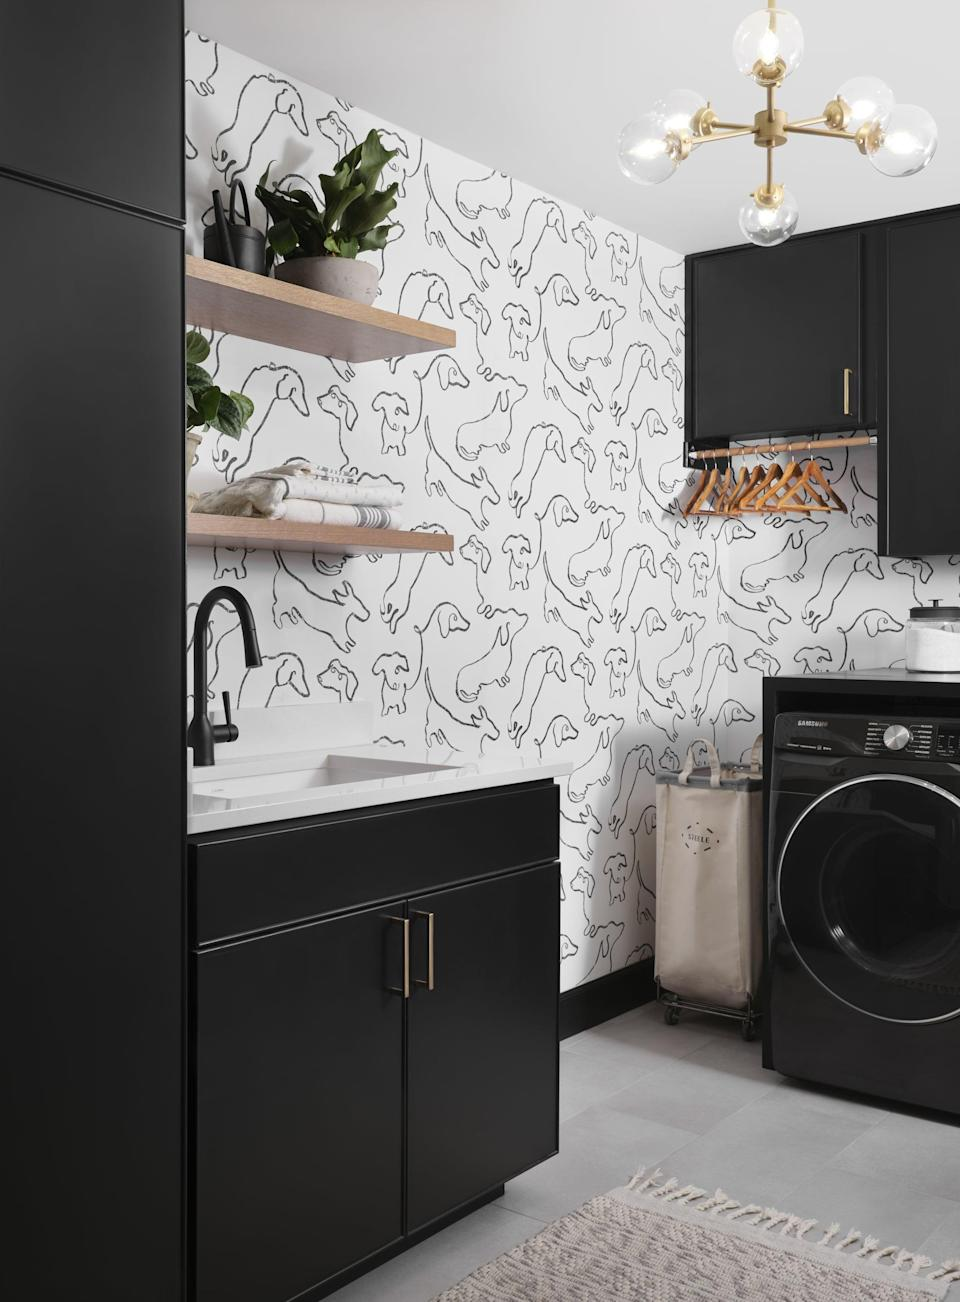 <p>Lucas and Laney's new laundry room has tons of storage space from floating shelves to pantry cabinetry. Chip and Joanna also gave the room a relaxed feel by using puppy patterned wallpaper in honor of the couple's dachshunds. </p>